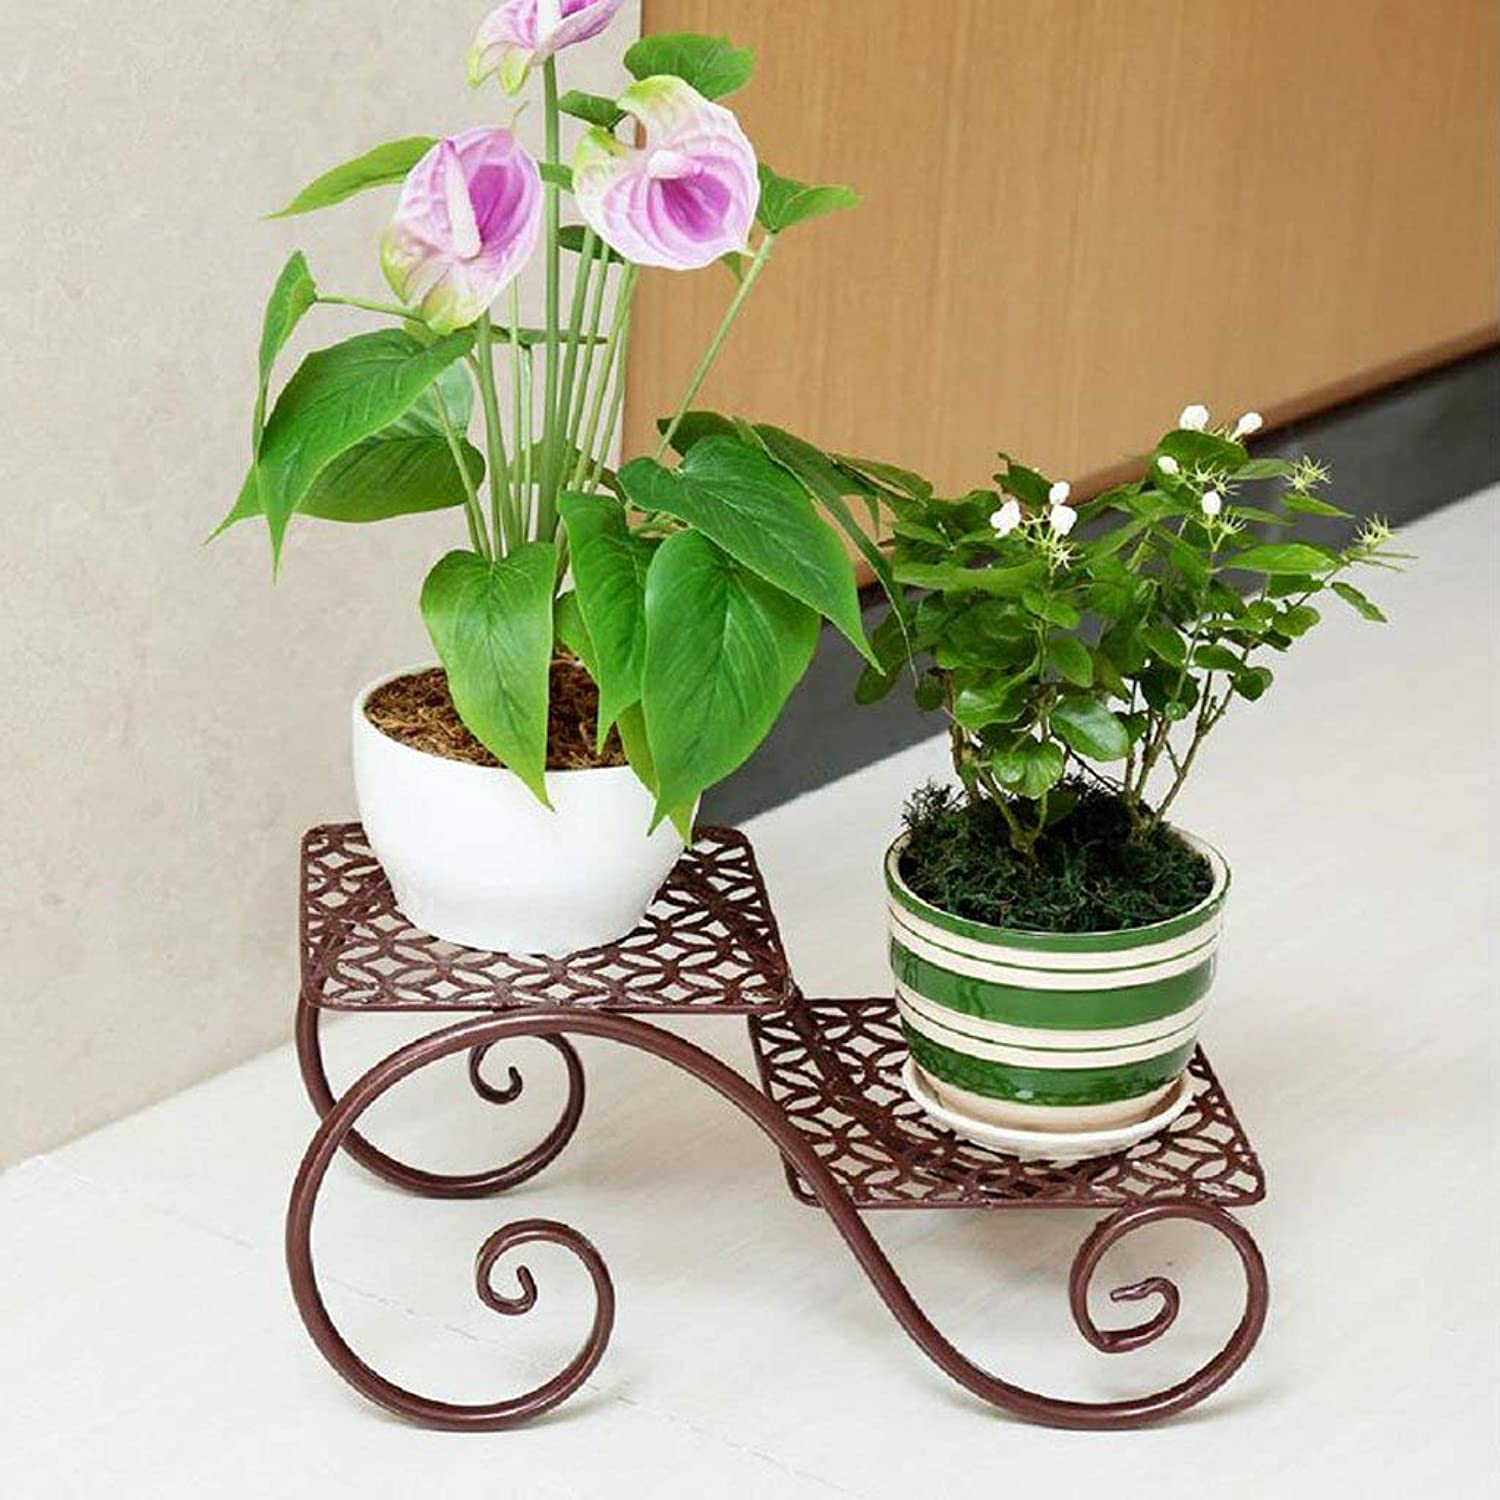 Gifts & Decor Plant Stand Shelf Flower Racks Iron Art Flower Stand Indoor Balcony Multi-Shelves Flower Pot Shelves Living Room Shelf (color   Bronze, Size   Two Layers)